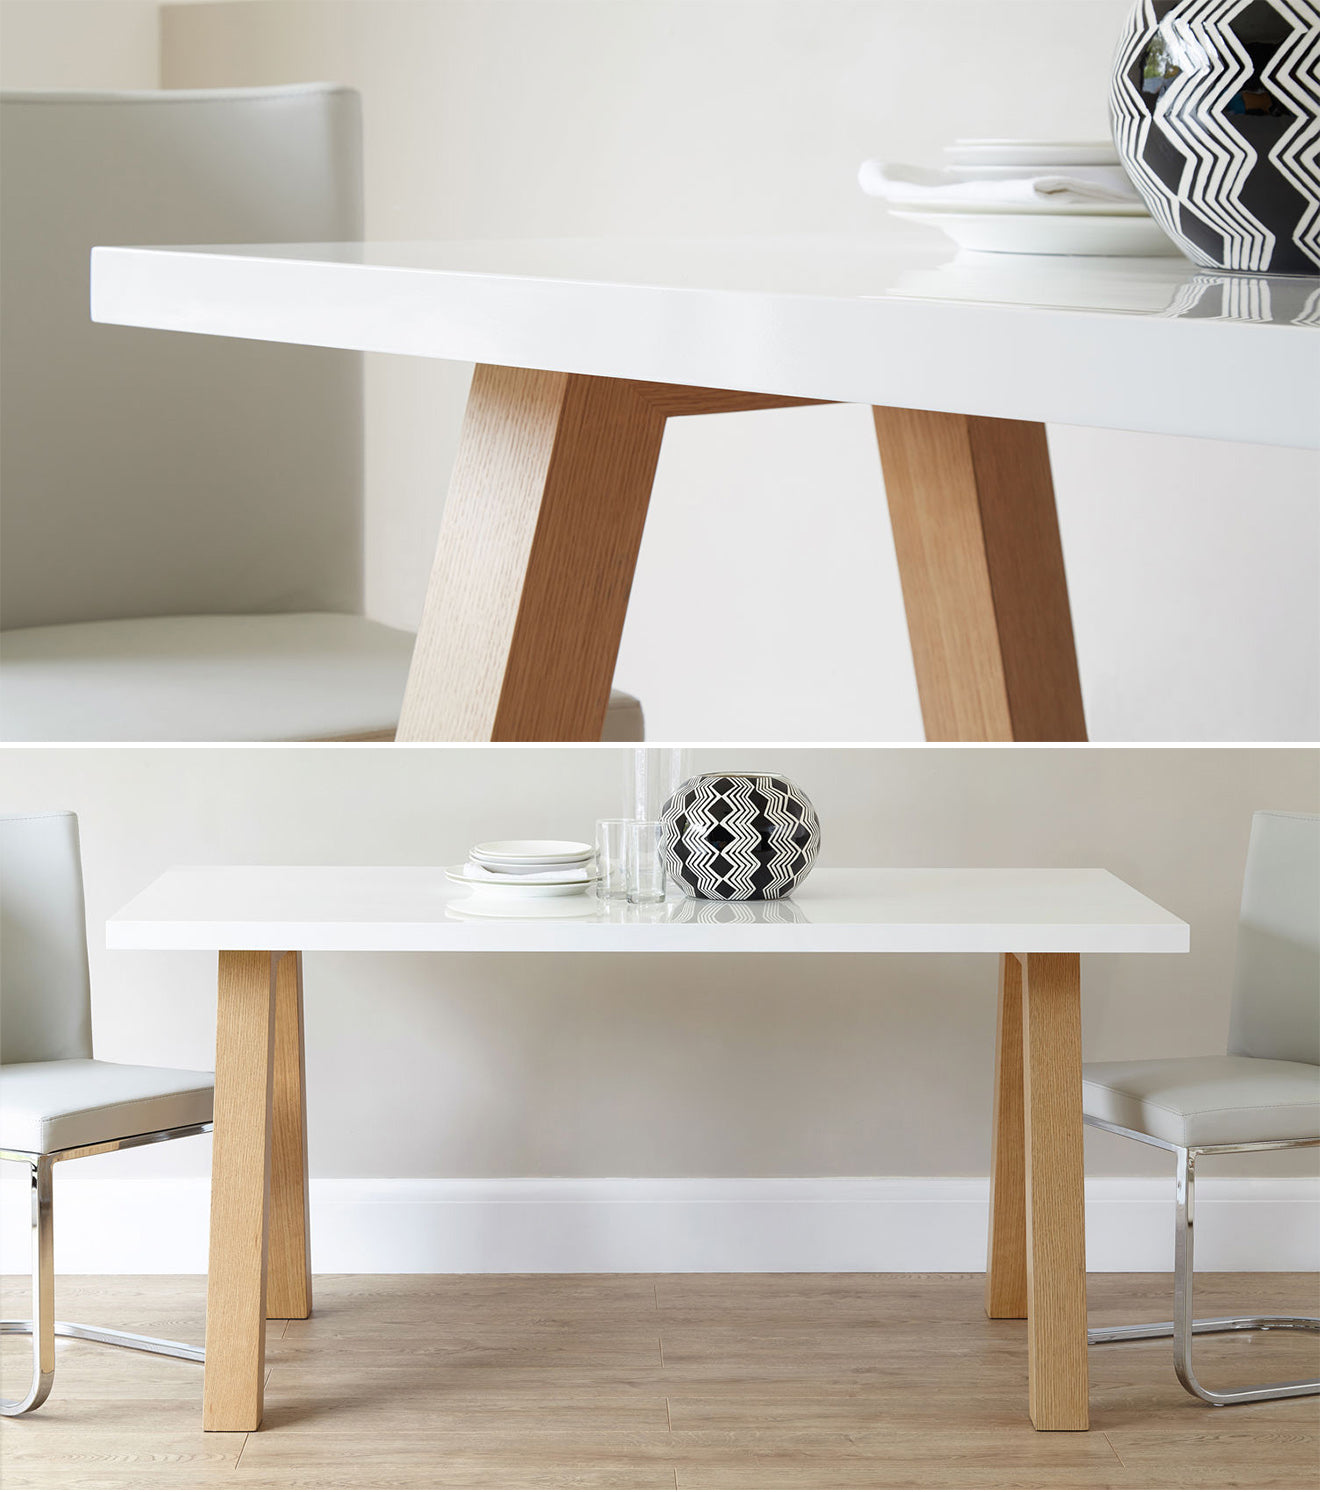 contemporary furniture design julia kendell martyn white designs